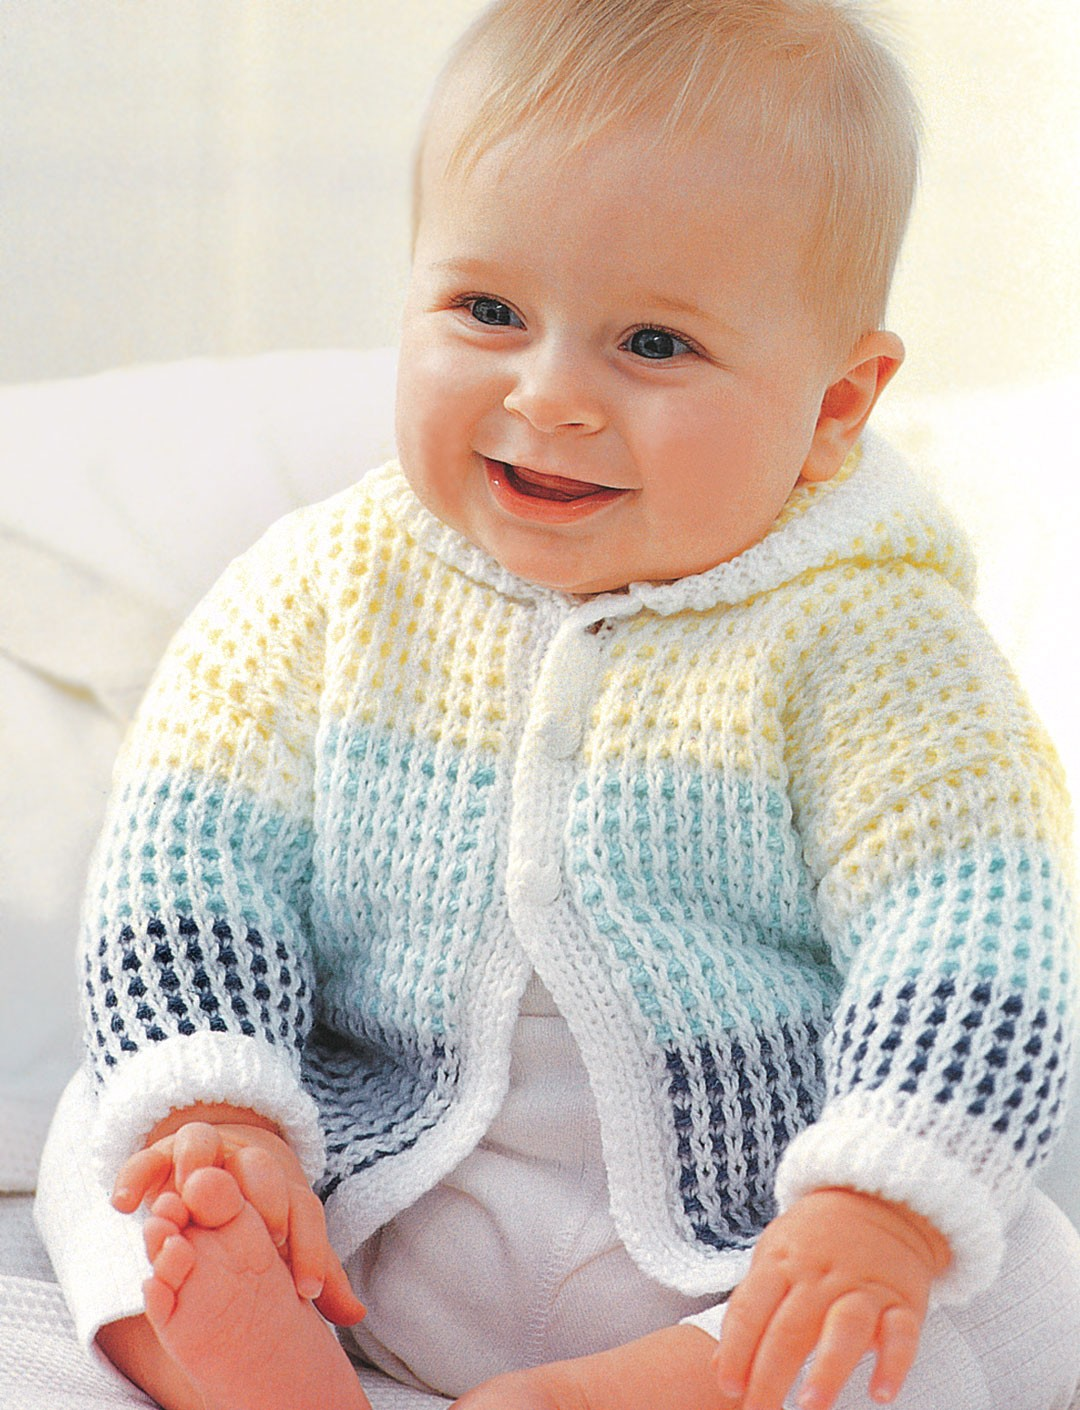 Knitting For Babies Charity : Shandeh s knitting and crochet